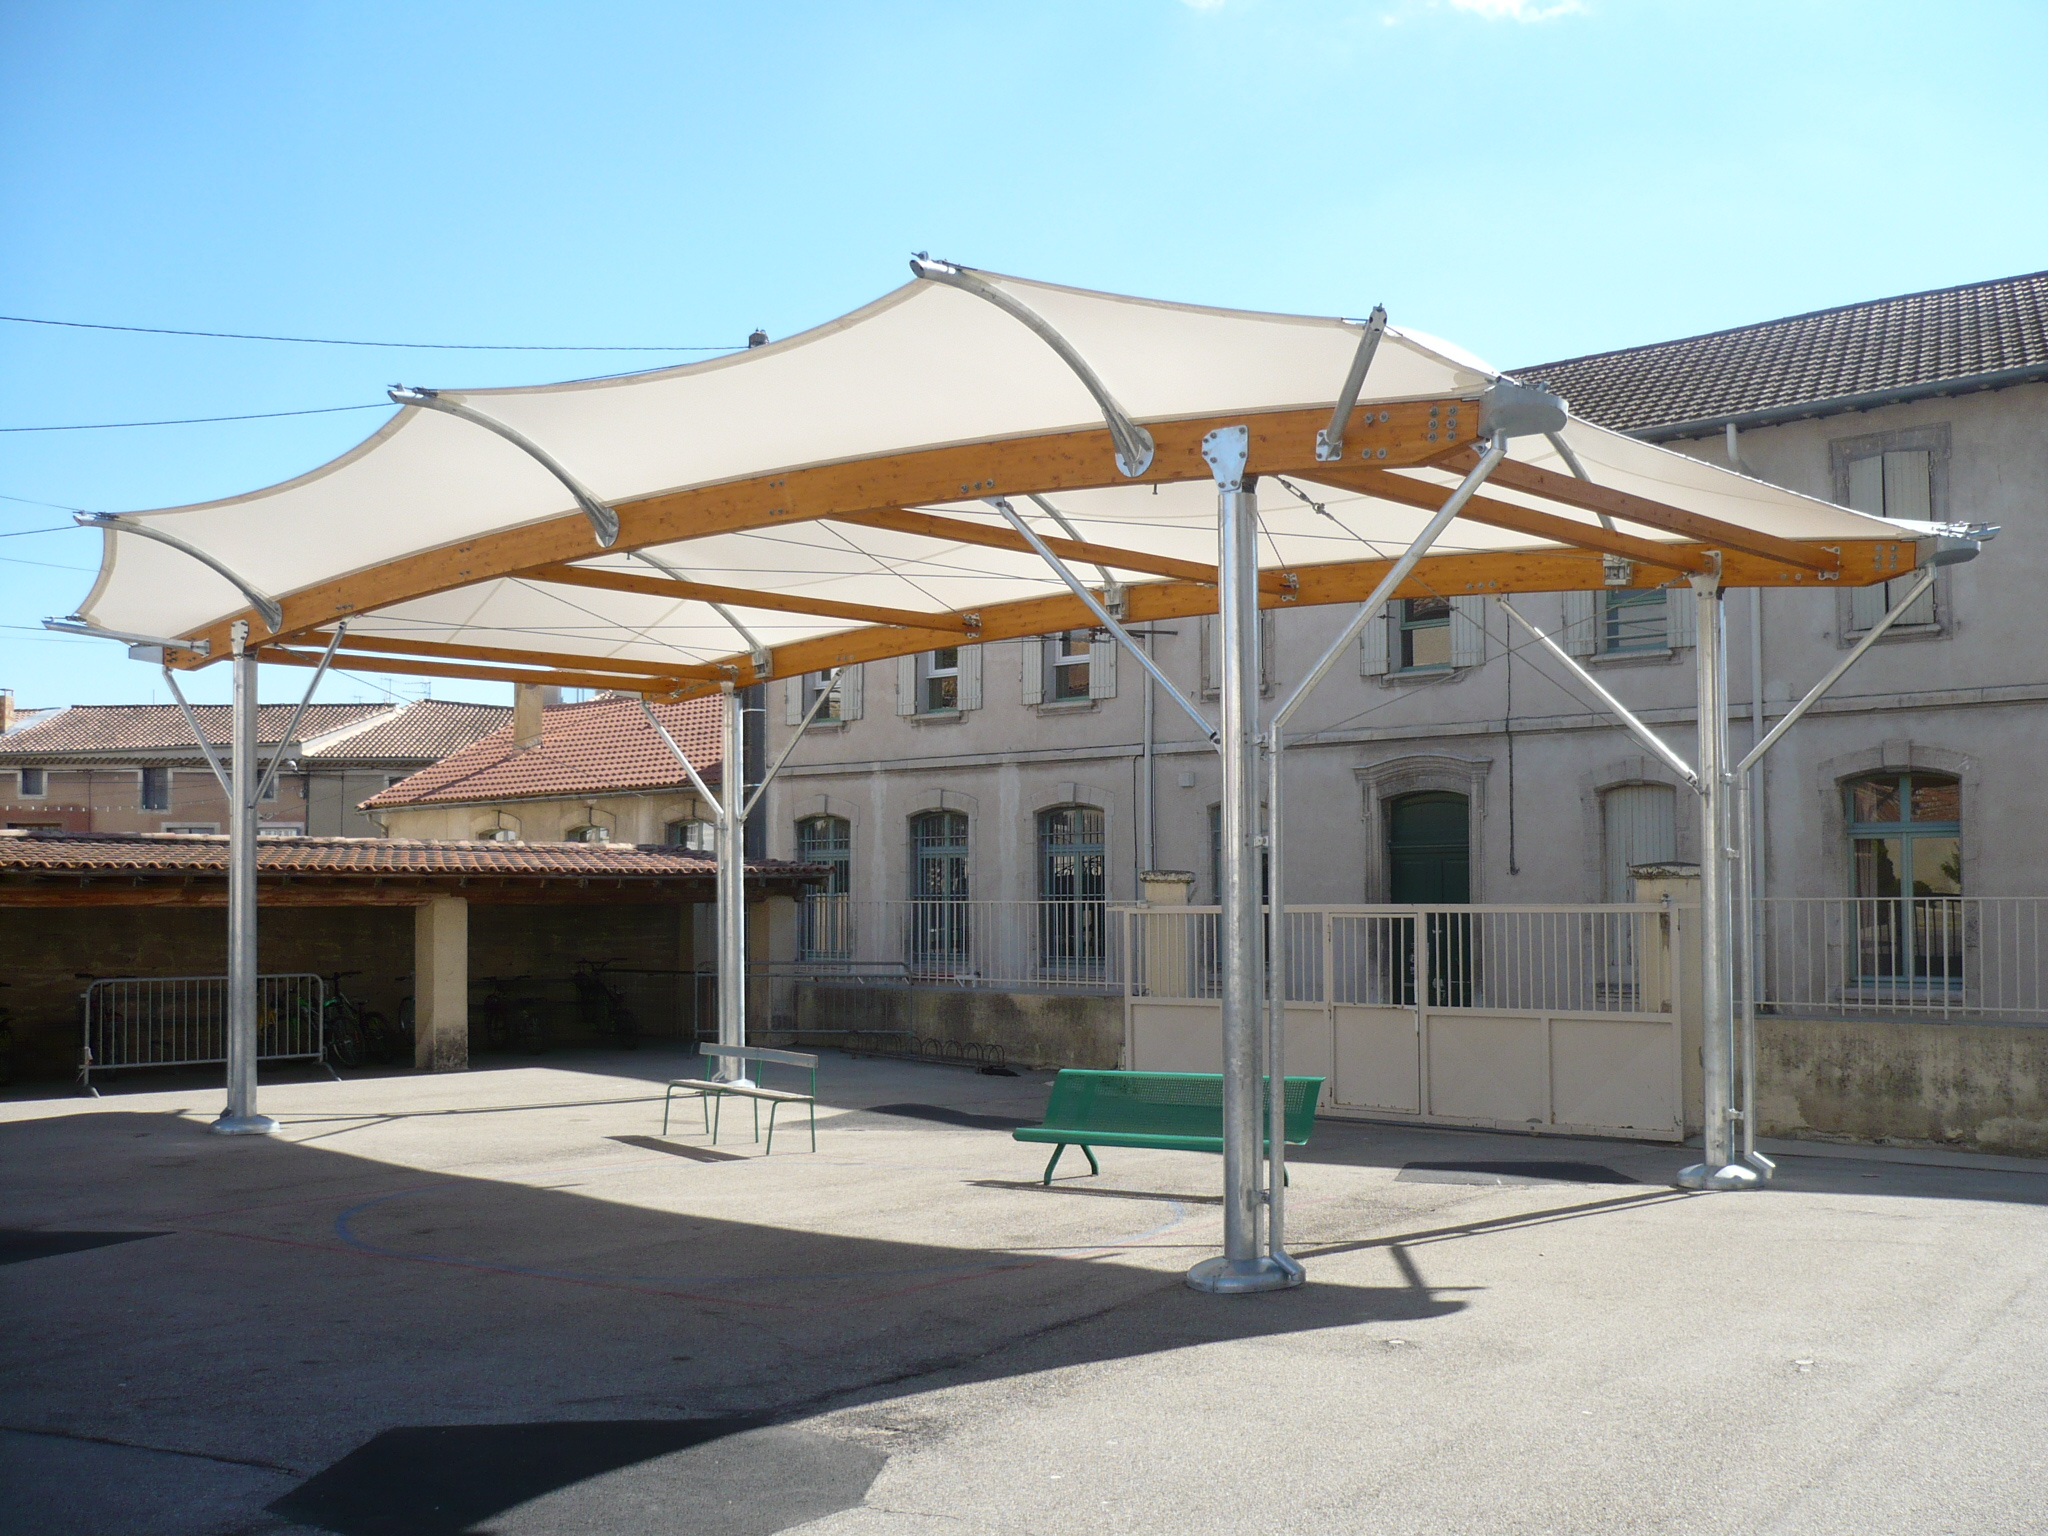 Covered school playground construction